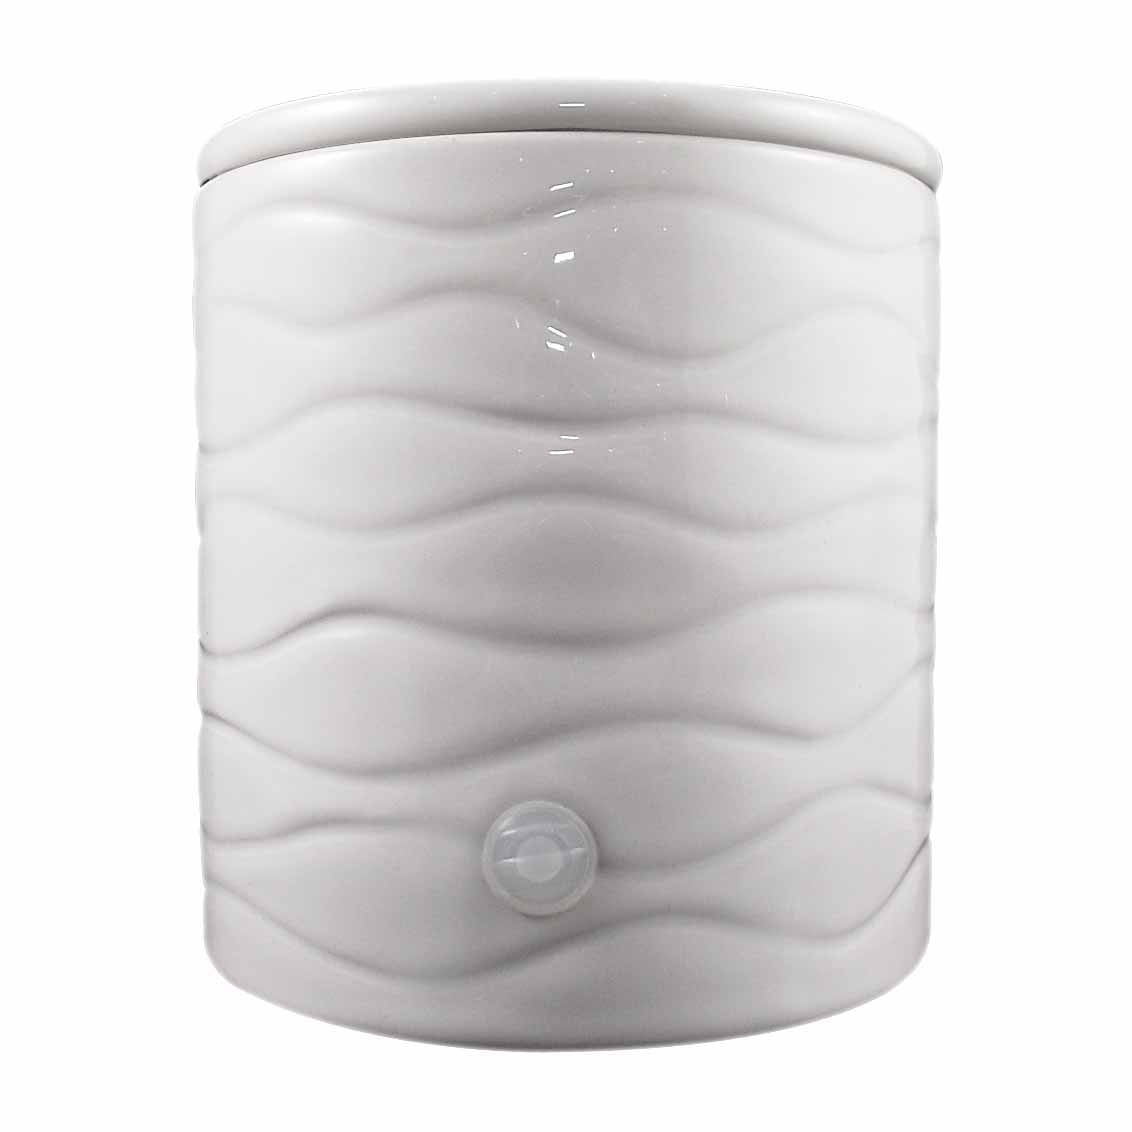 Mainstays Electric Wax Warmer, White